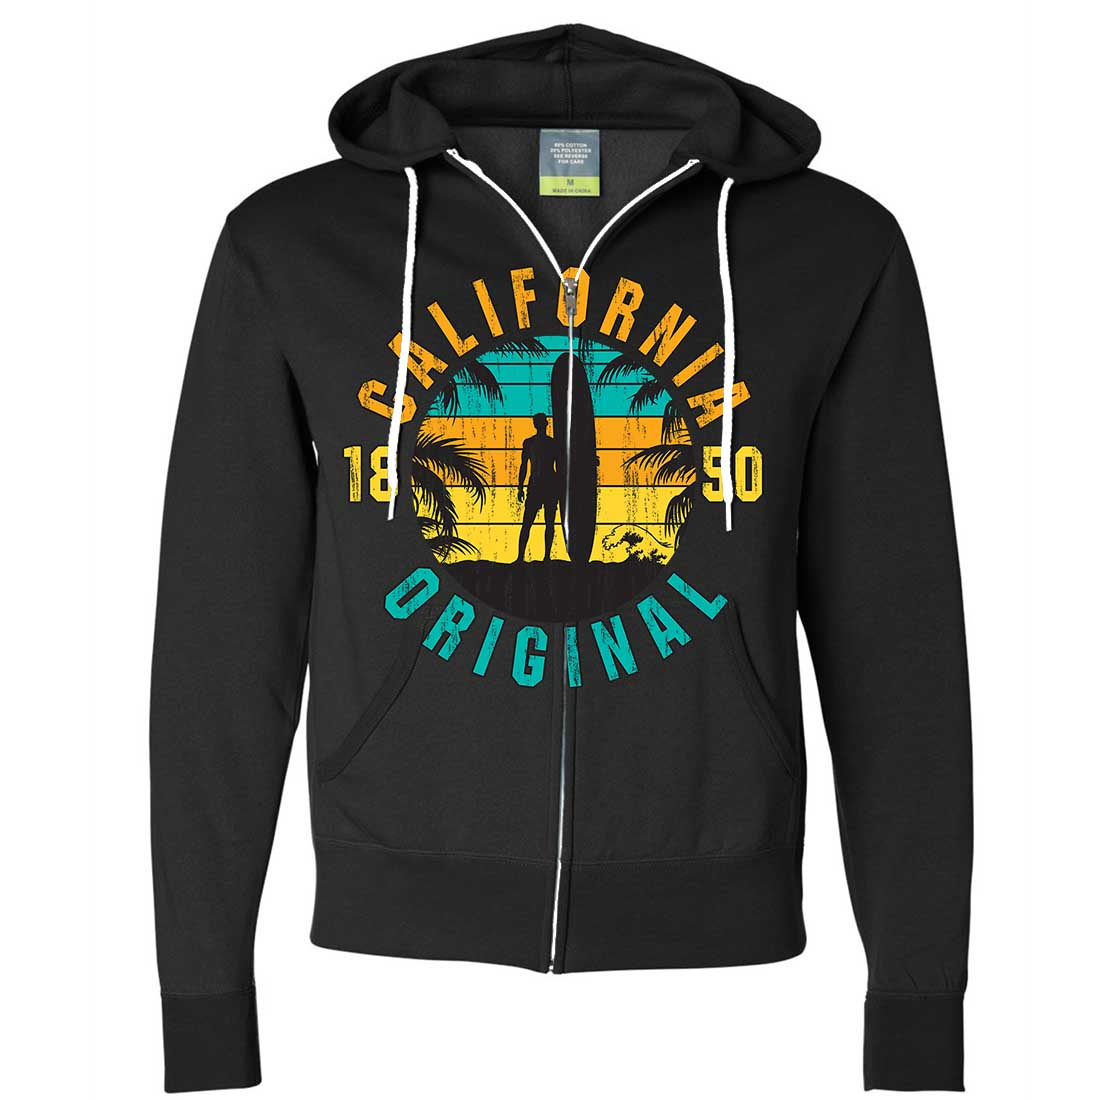 California Original Vintage Surfer Zip-Up Hoodie